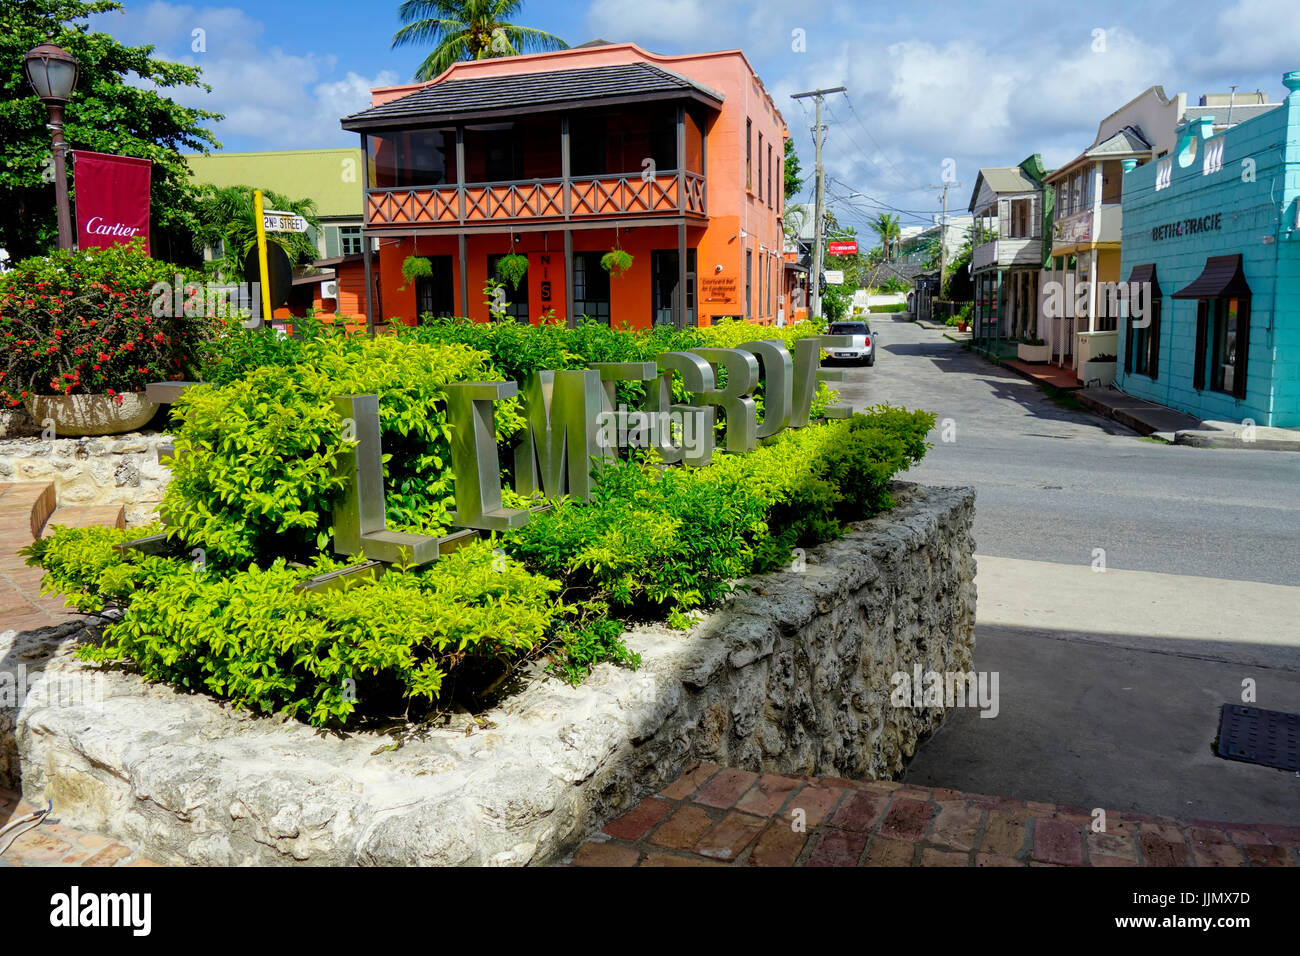 Limegrove Lifestyle Centre, Holetown, Barbados, West Indies - Stock Image